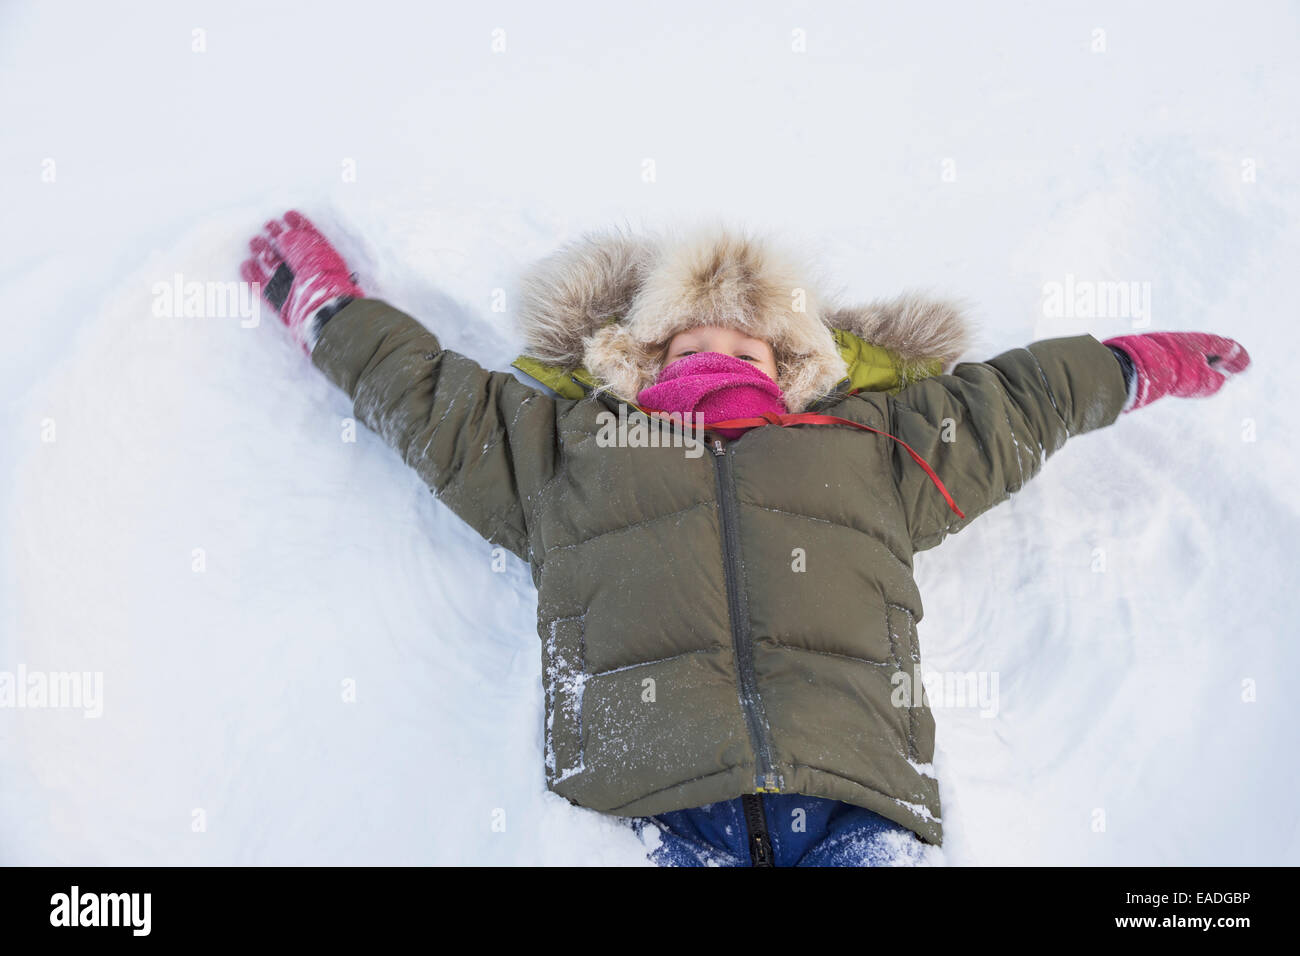 Young boy dressed in a winter parka with a wolf ruff makes a snow angel in Wiseman, Alaska, Arctic - Stock Image